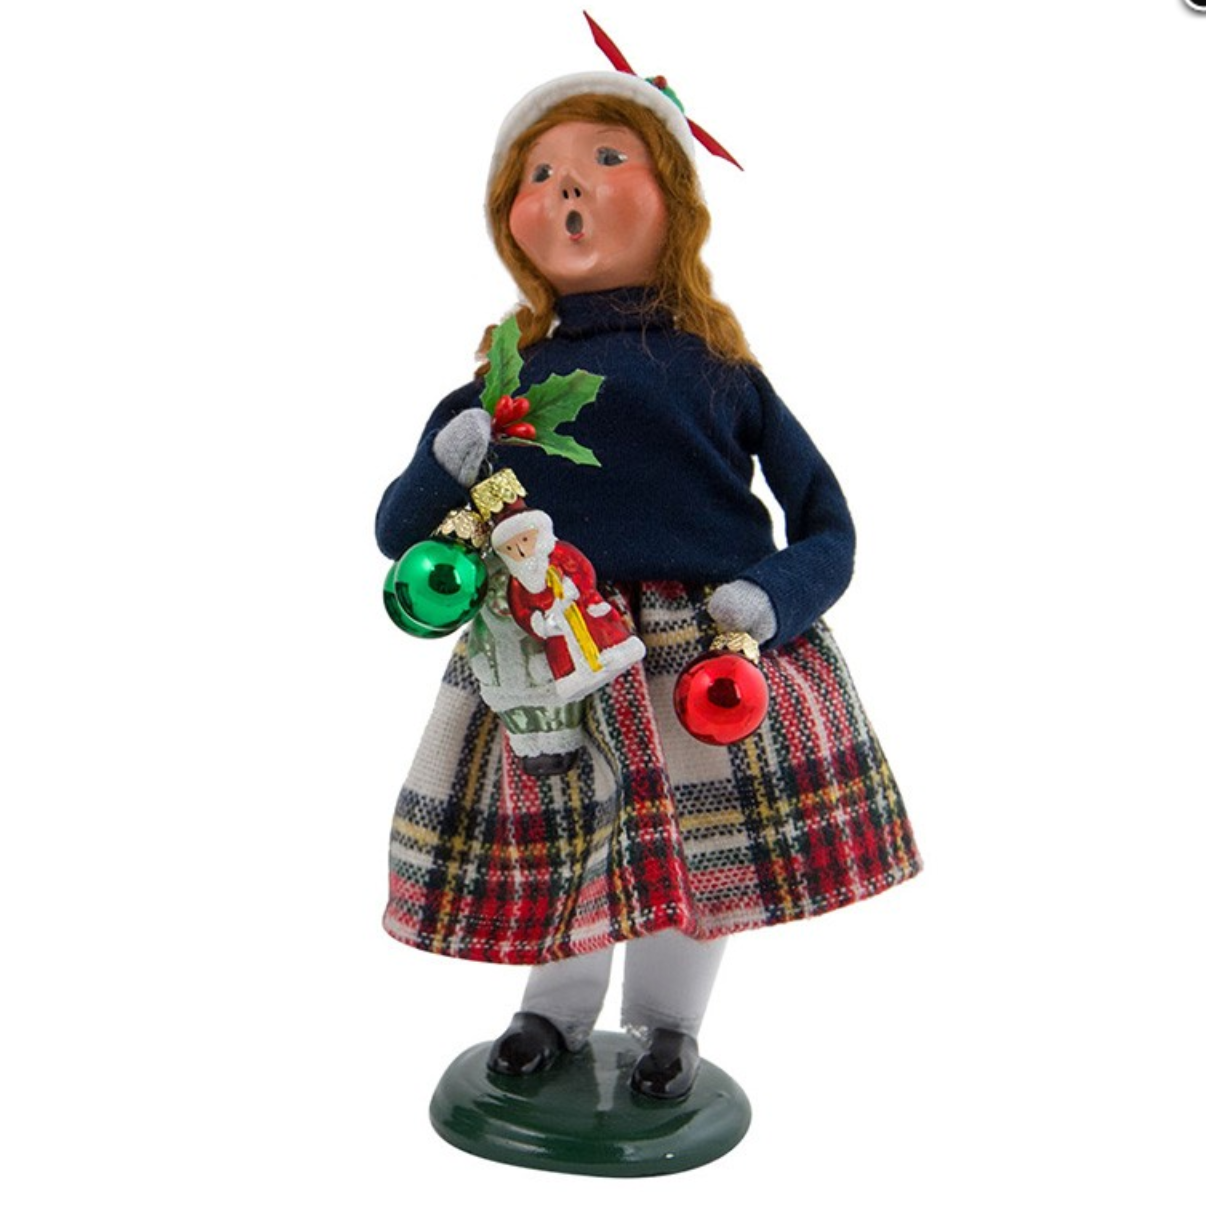 Christmas carolers figurines for sale - 2017 Byers Choice Ornament Girl